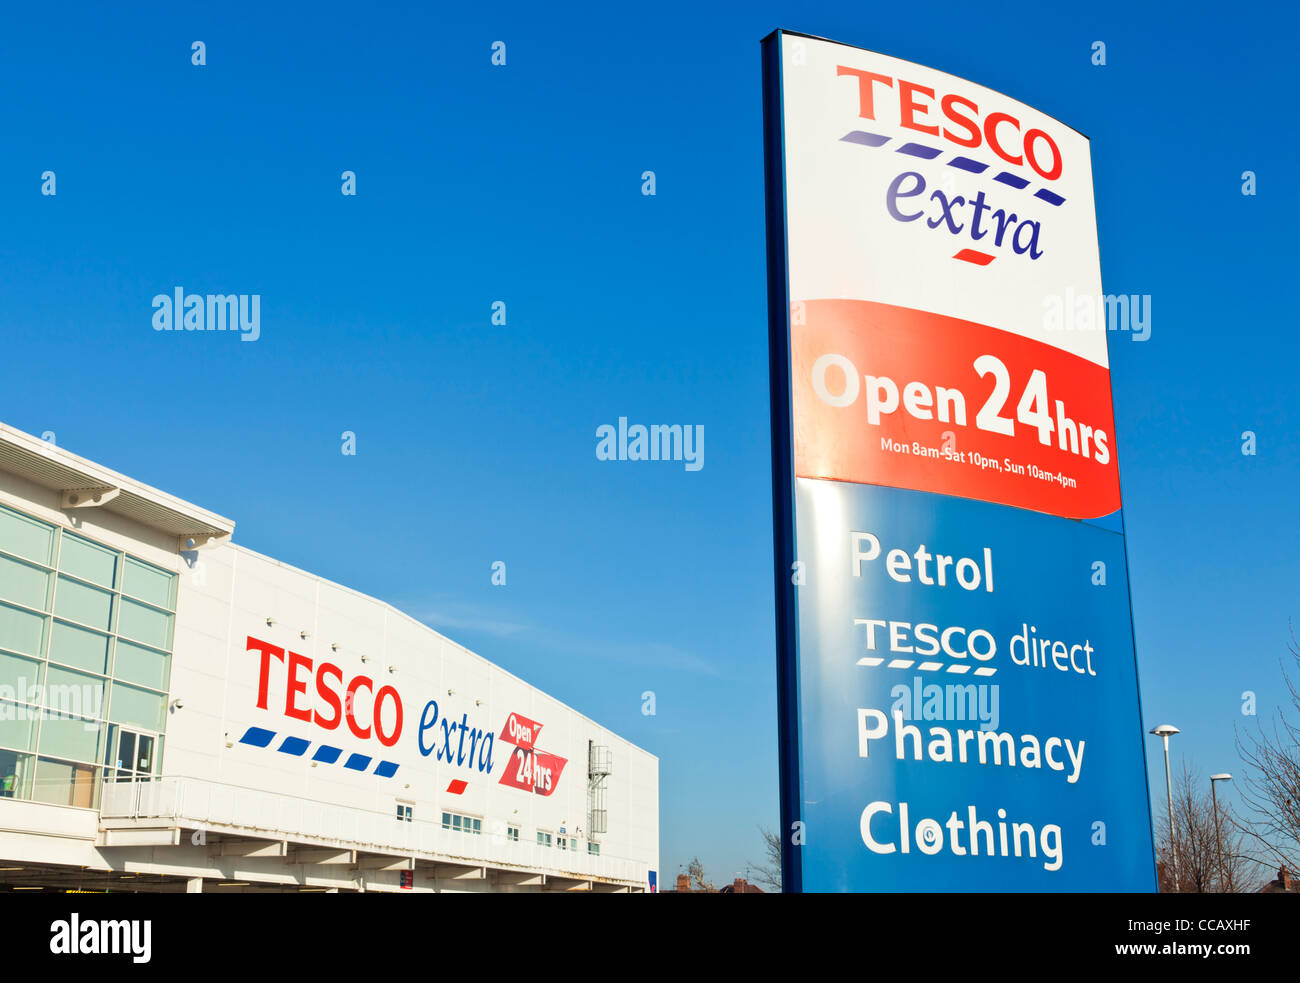 Tesco Extra Supermarket Long eaton town Derbyshire Nottinghamshire England UK GB EU Europe - Stock Image